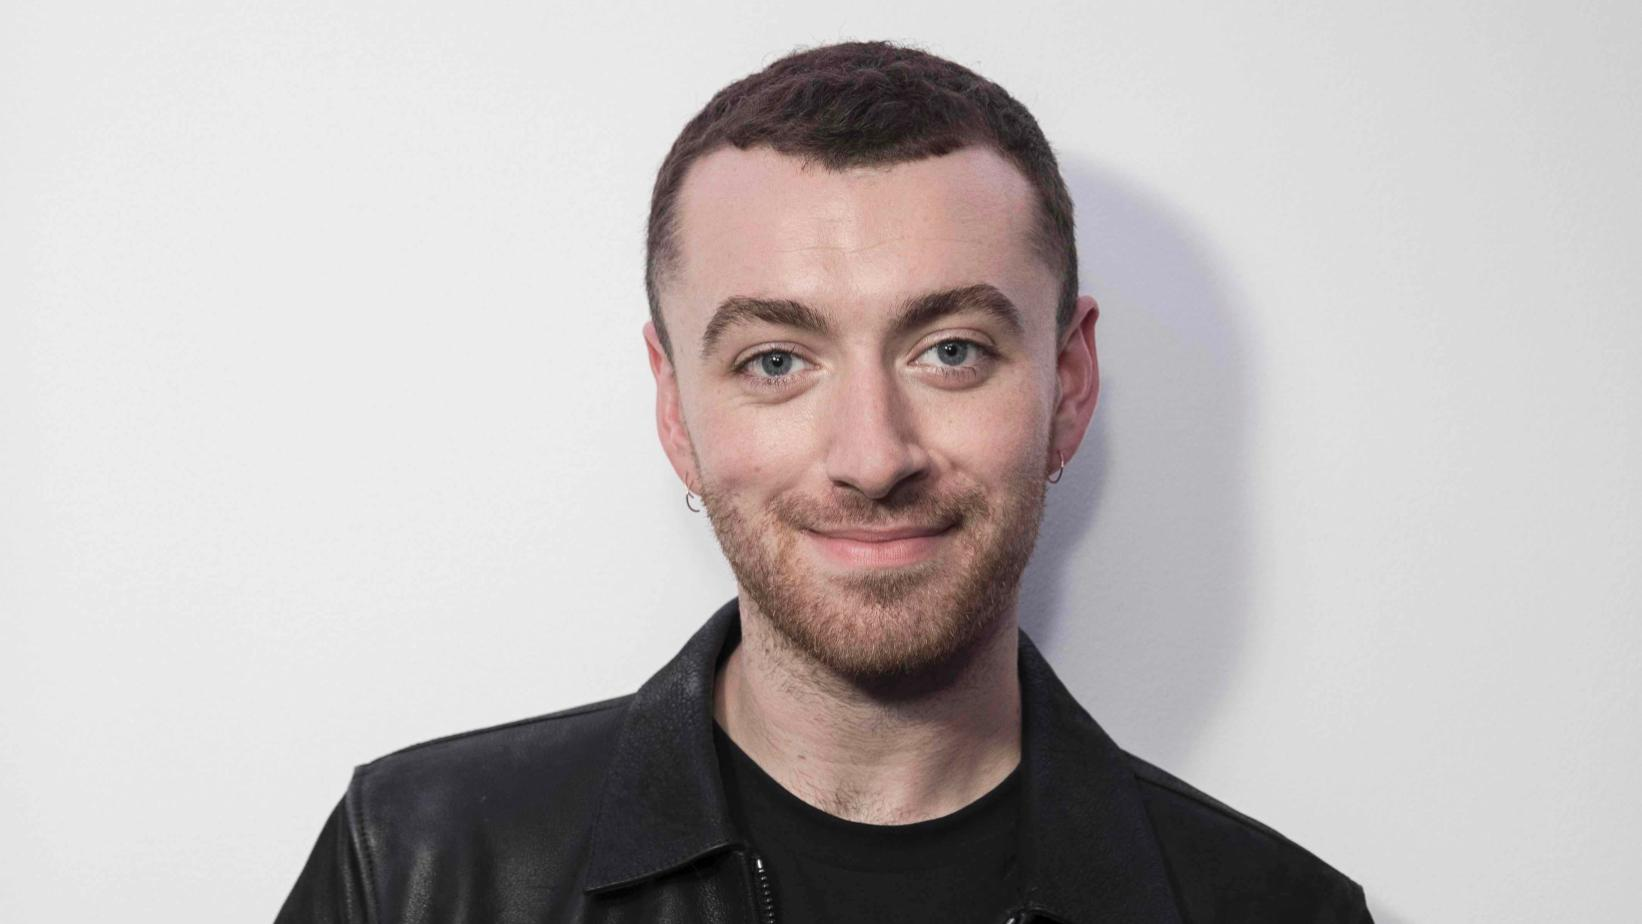 Sam Smith photographed in 2017